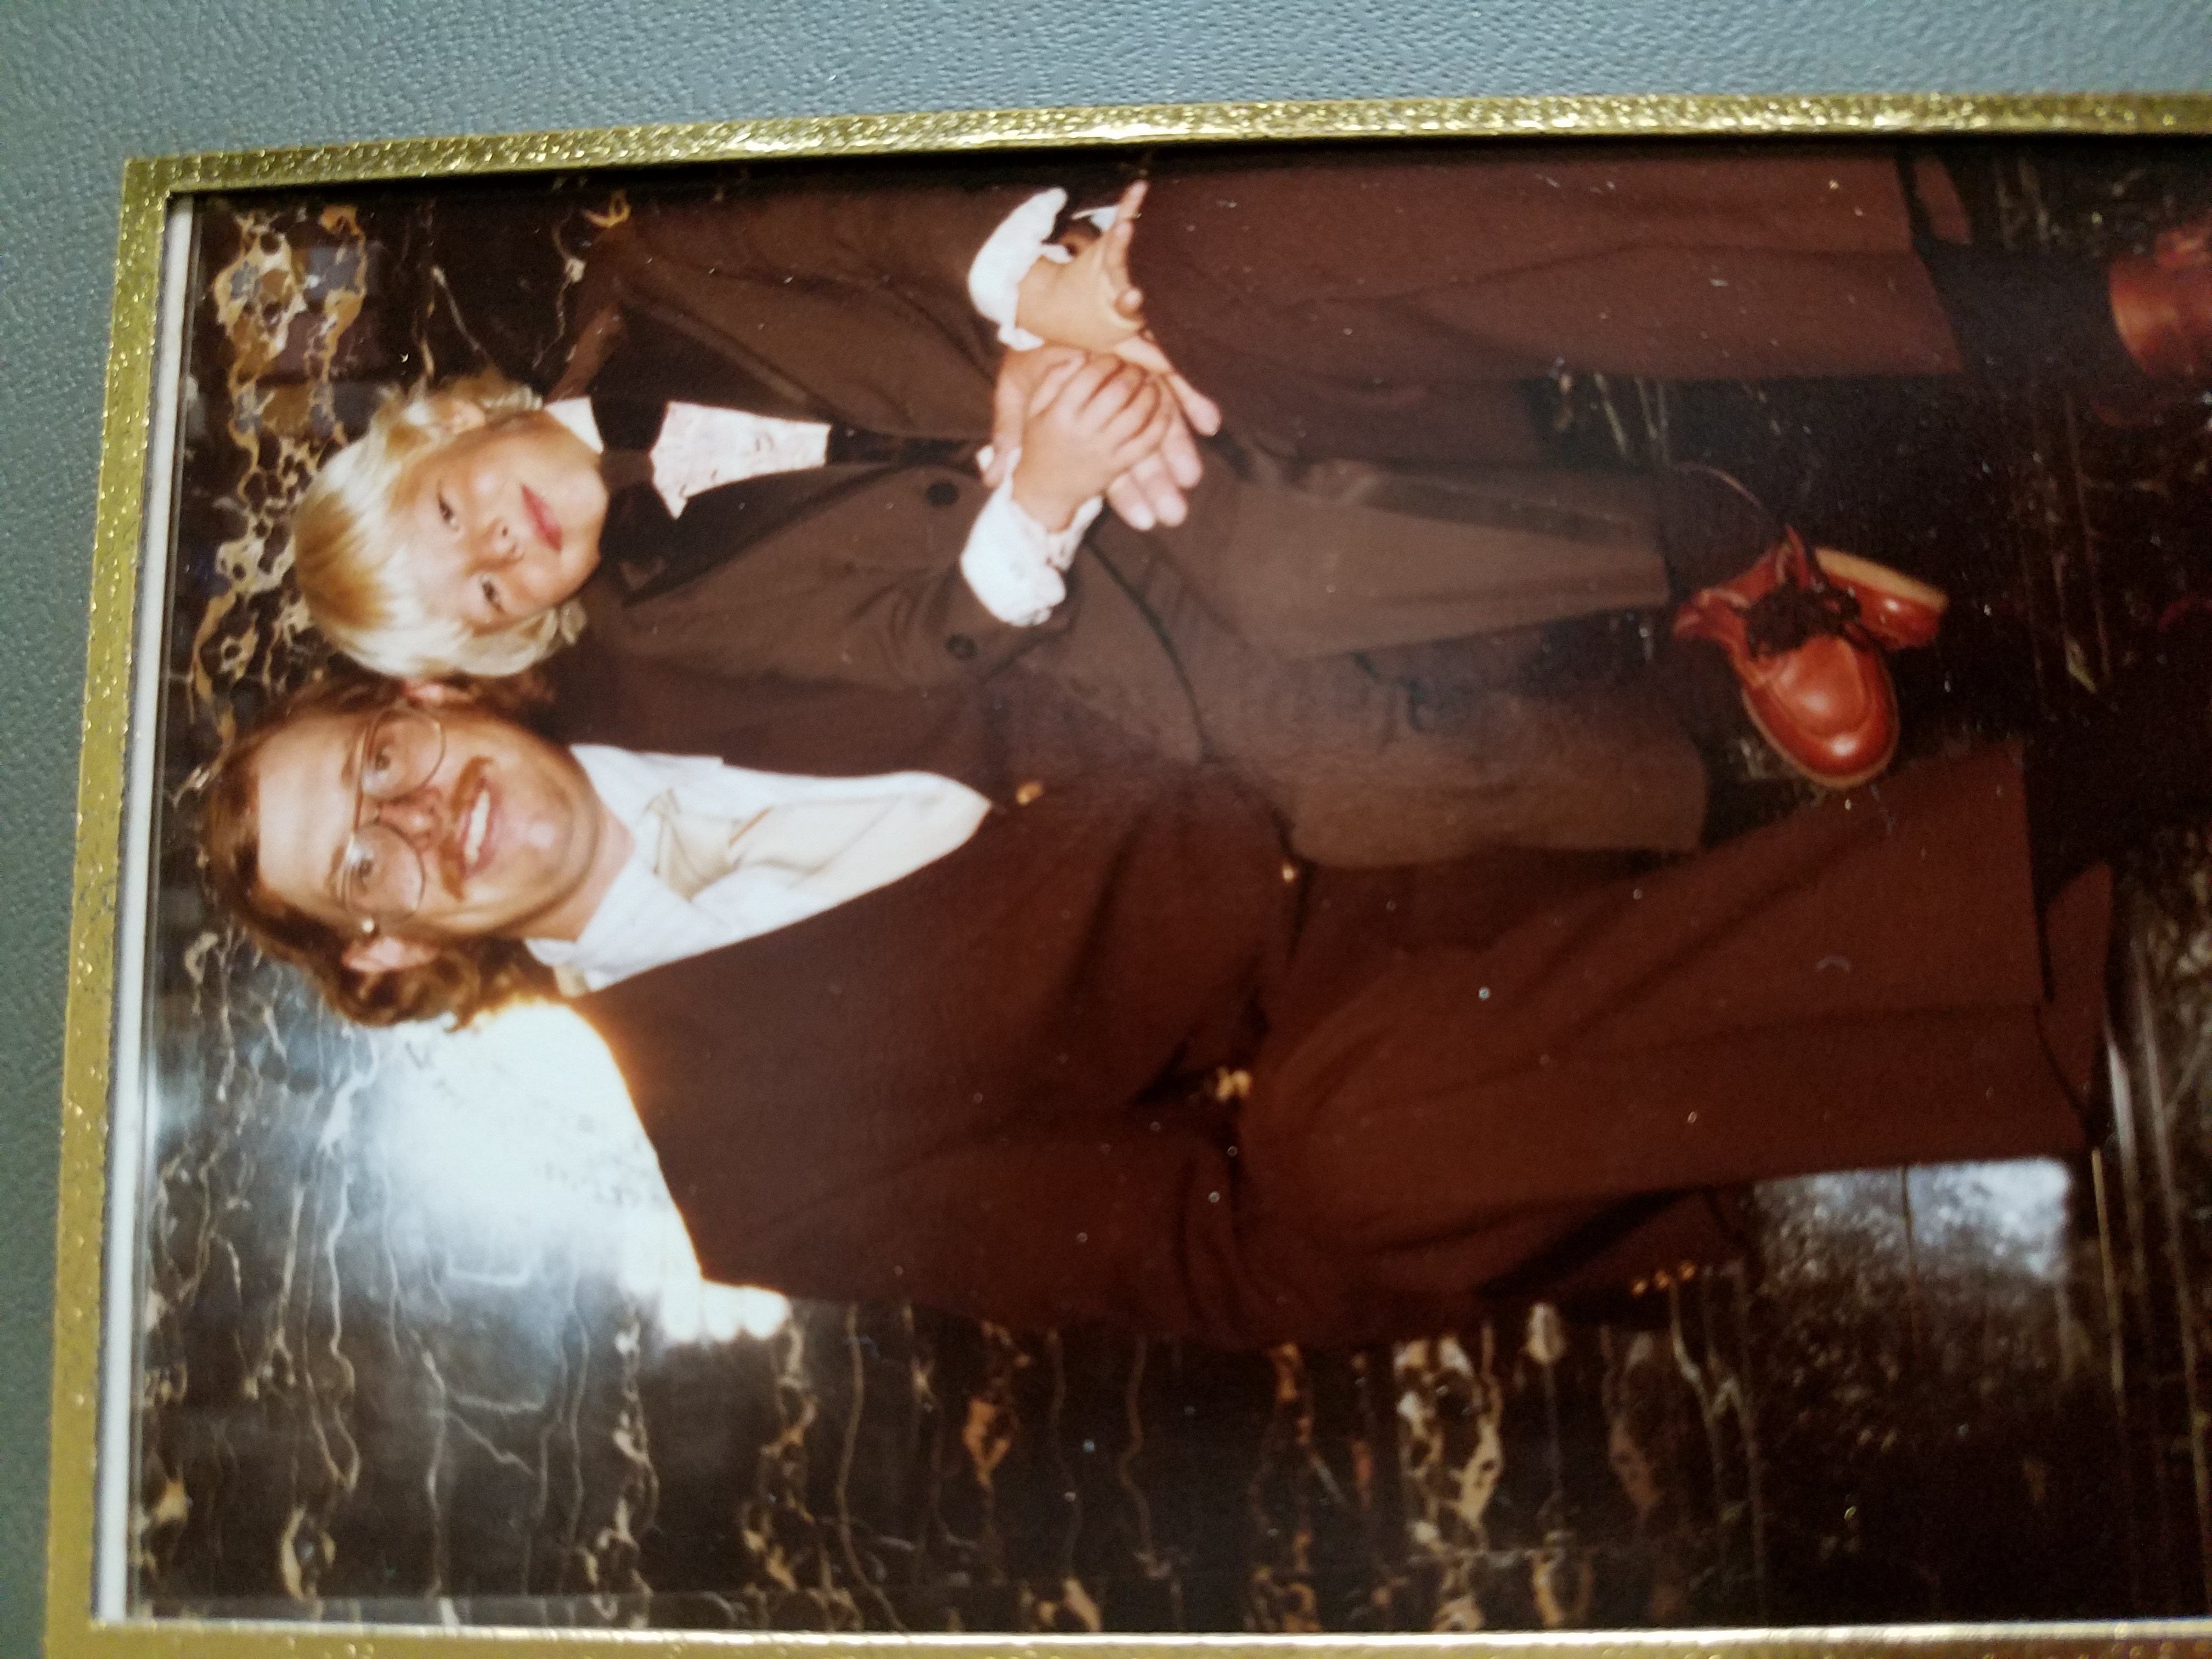 Billy and Shawn from my wedding 1981